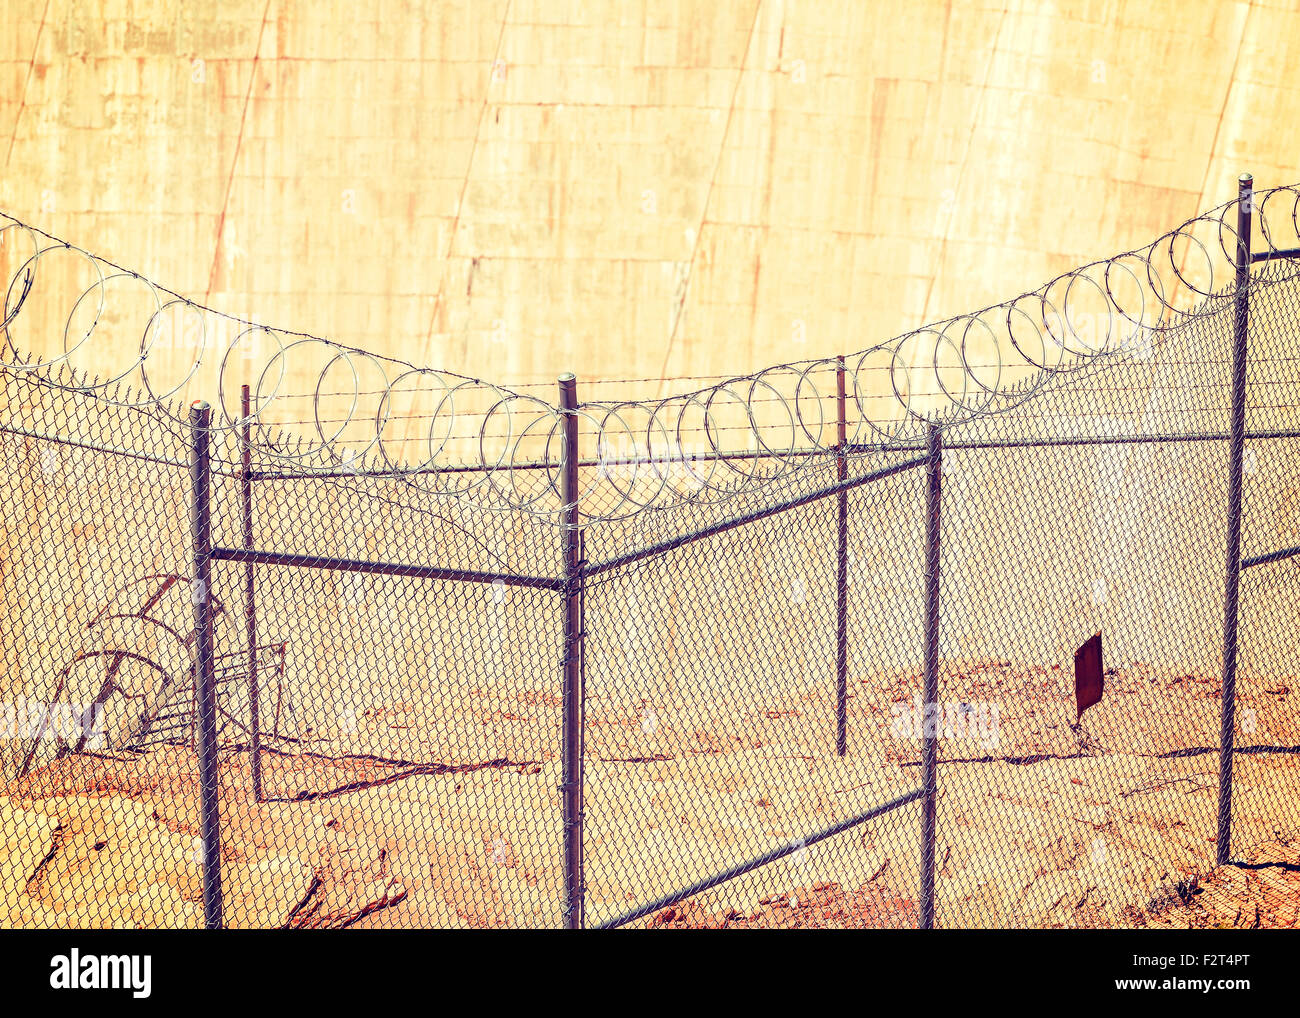 Barbed wire fence, shallow depth of field, crime and punishment concept photo. - Stock Image